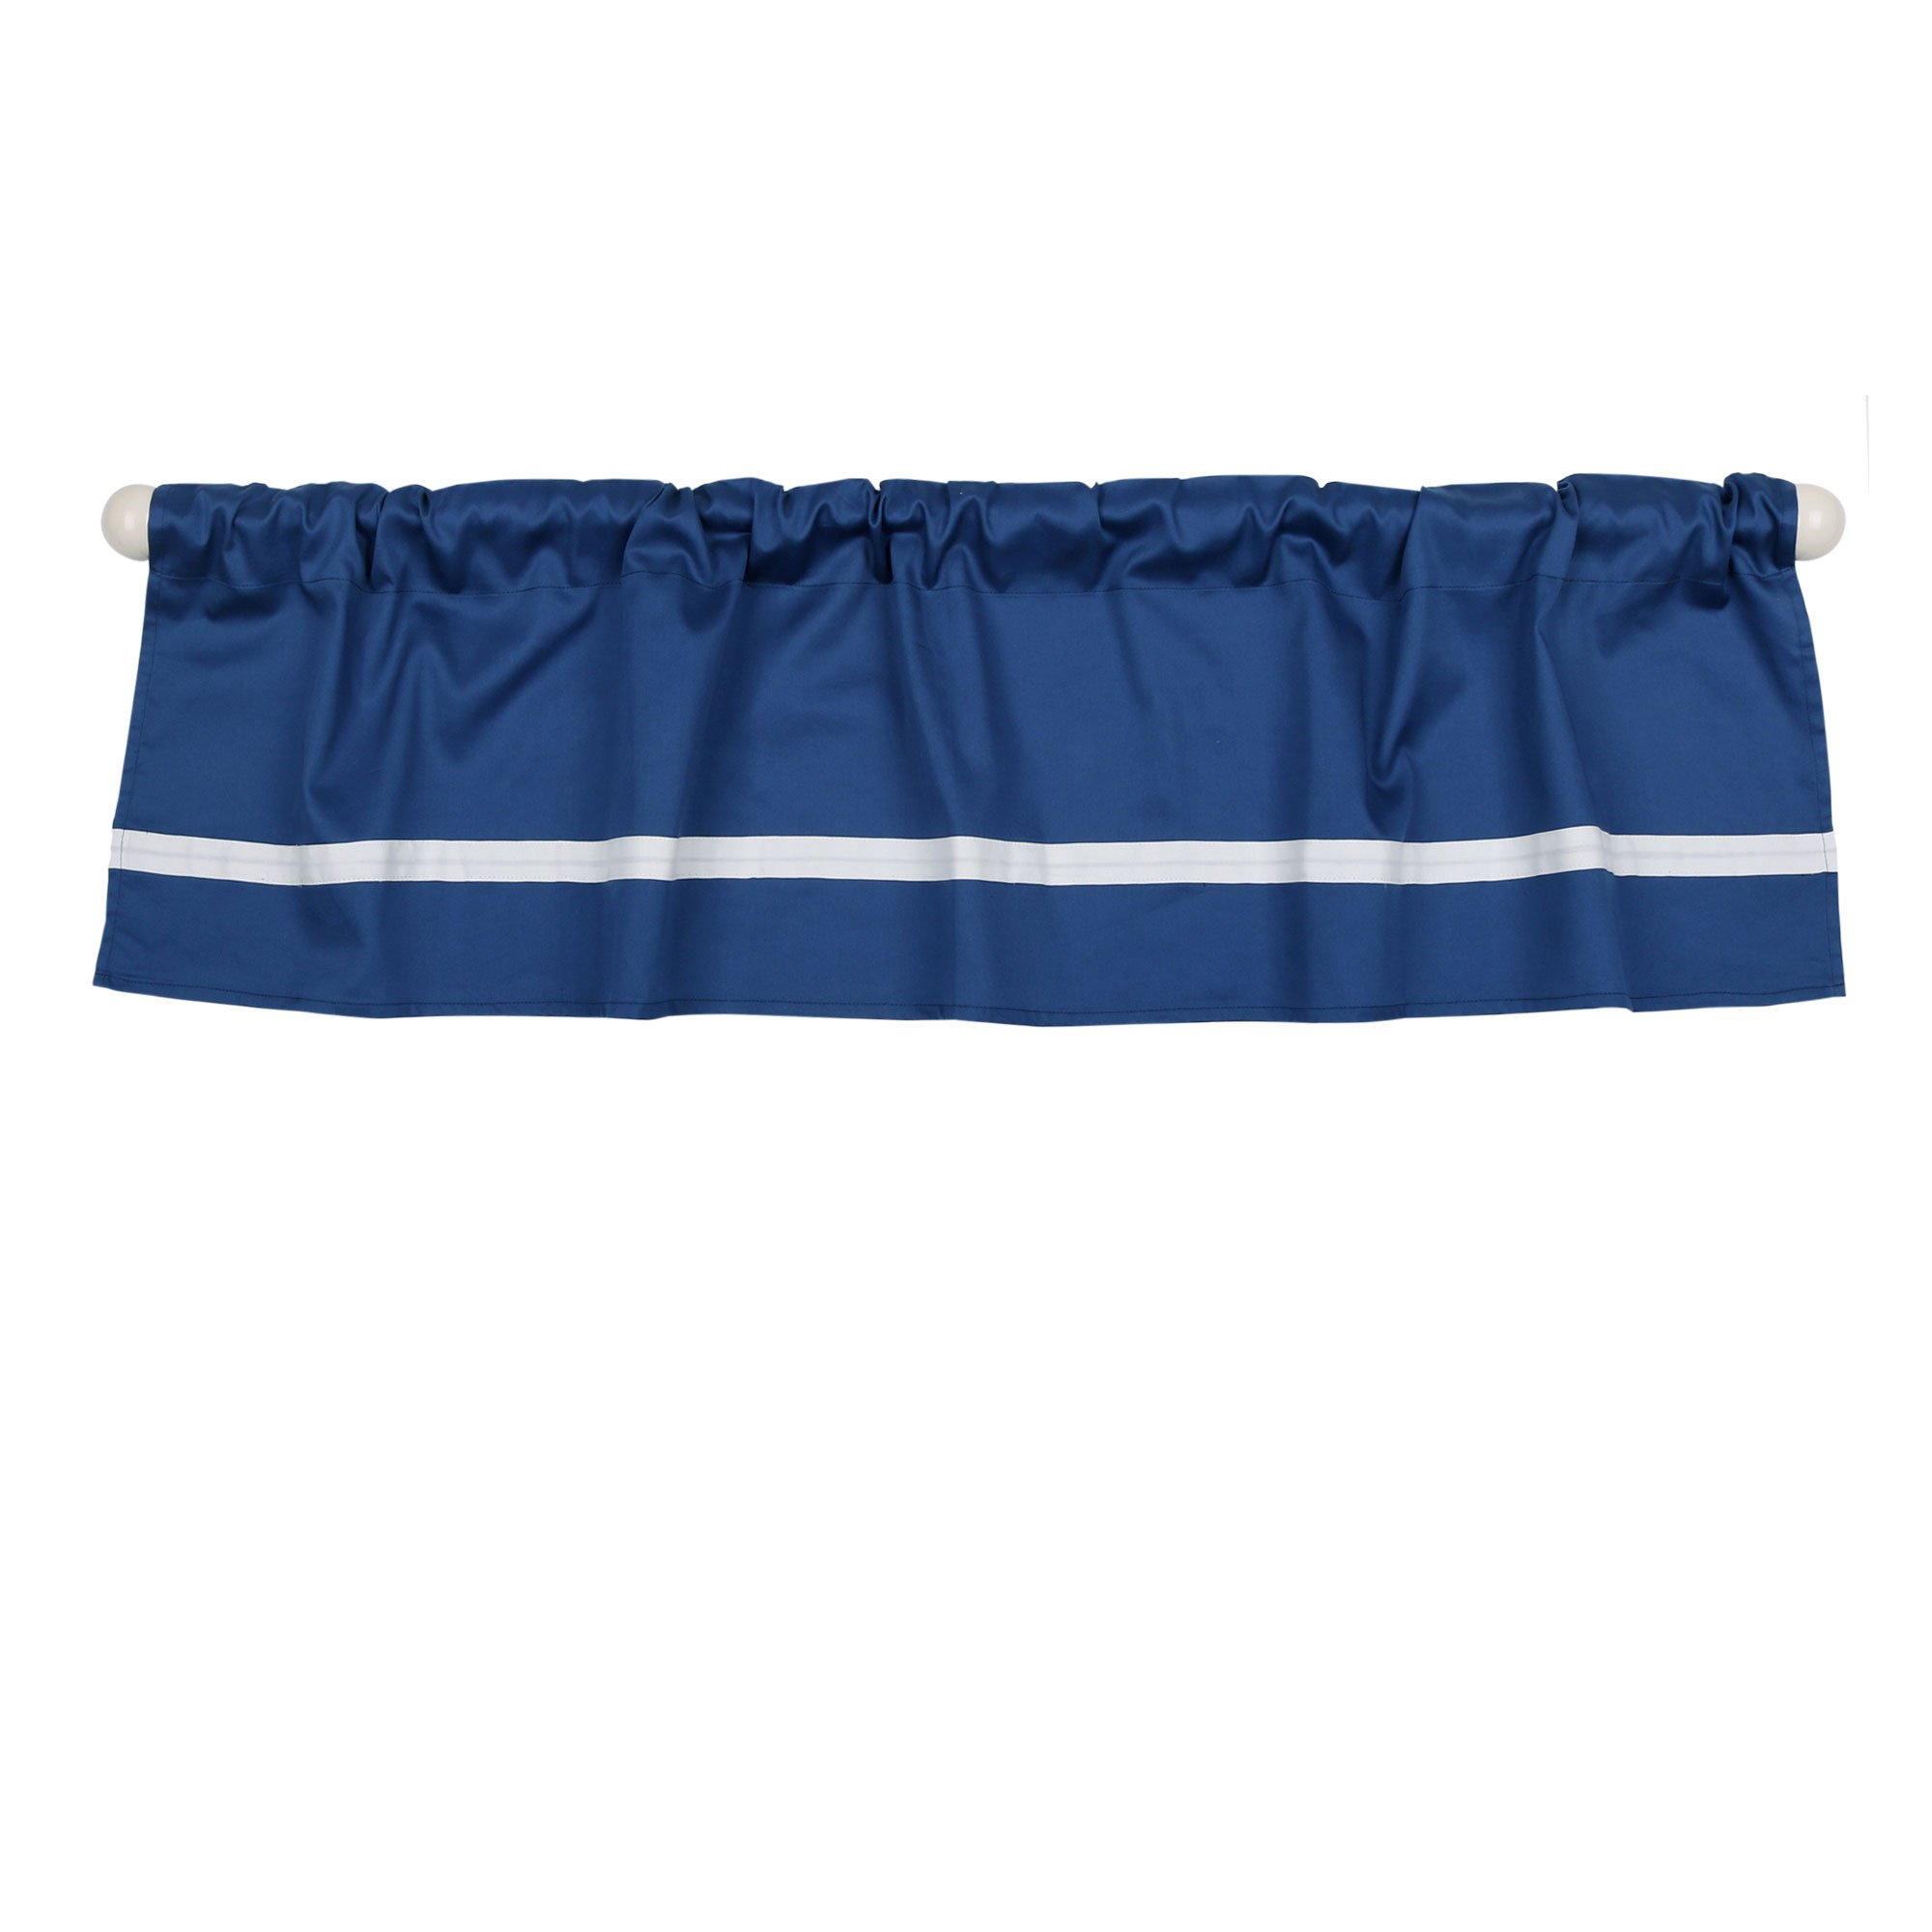 Navy Blue Tailored Window Valance by The Peanut Shell - 100% Cotton Sateen